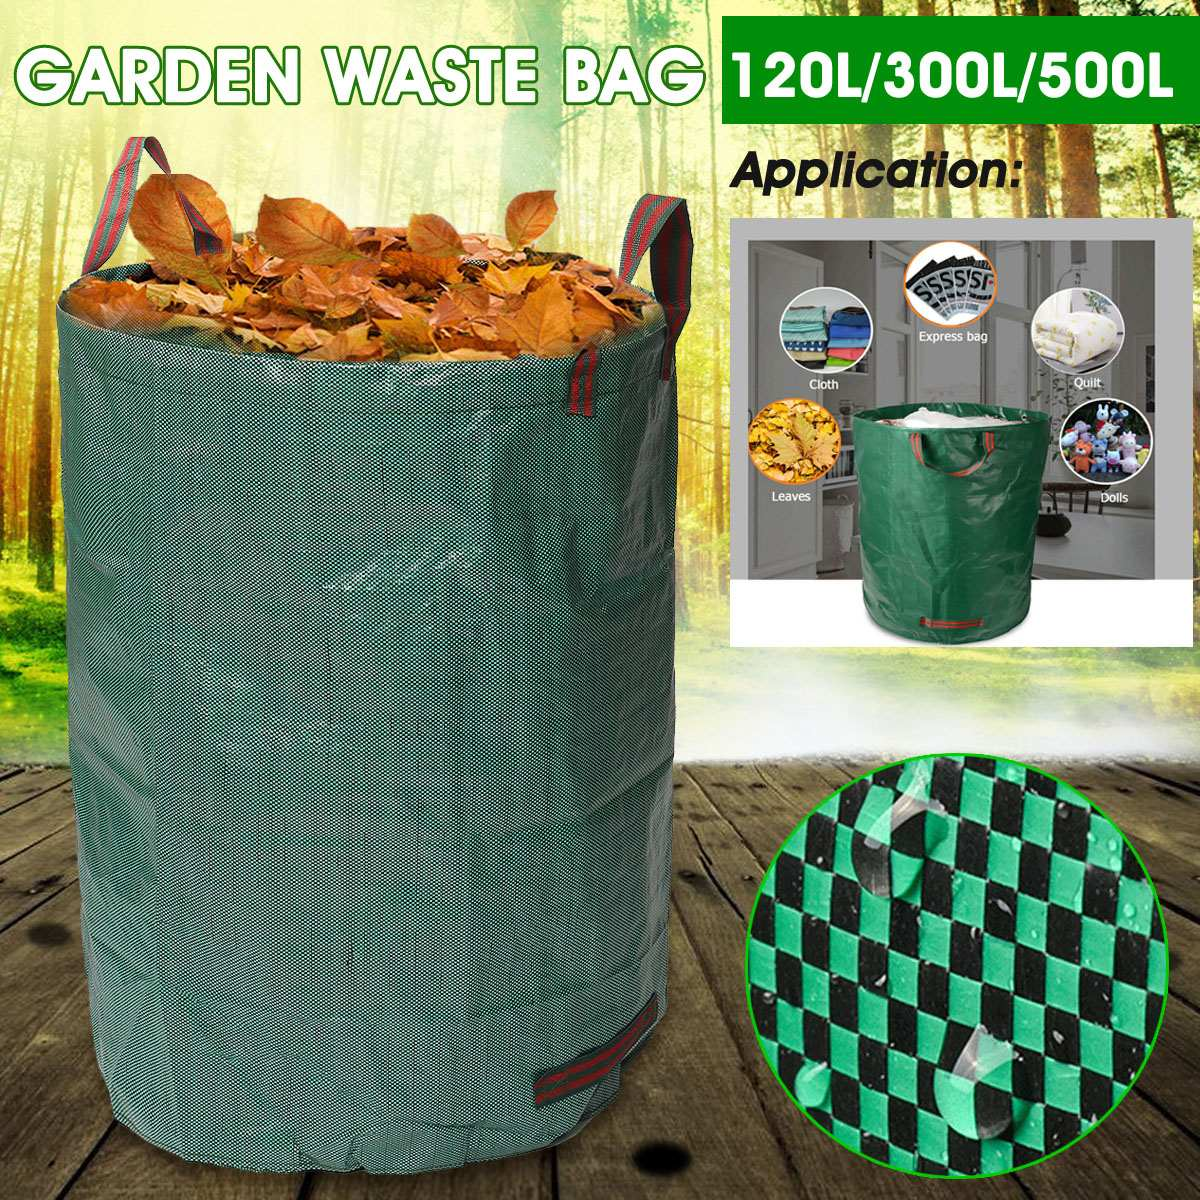 120L/300L/500L Large Capacity Heavy Duty Garden Waste Bag Durable Reusable Waterproof PP Yard Leaf Weeds Grass Container Storage